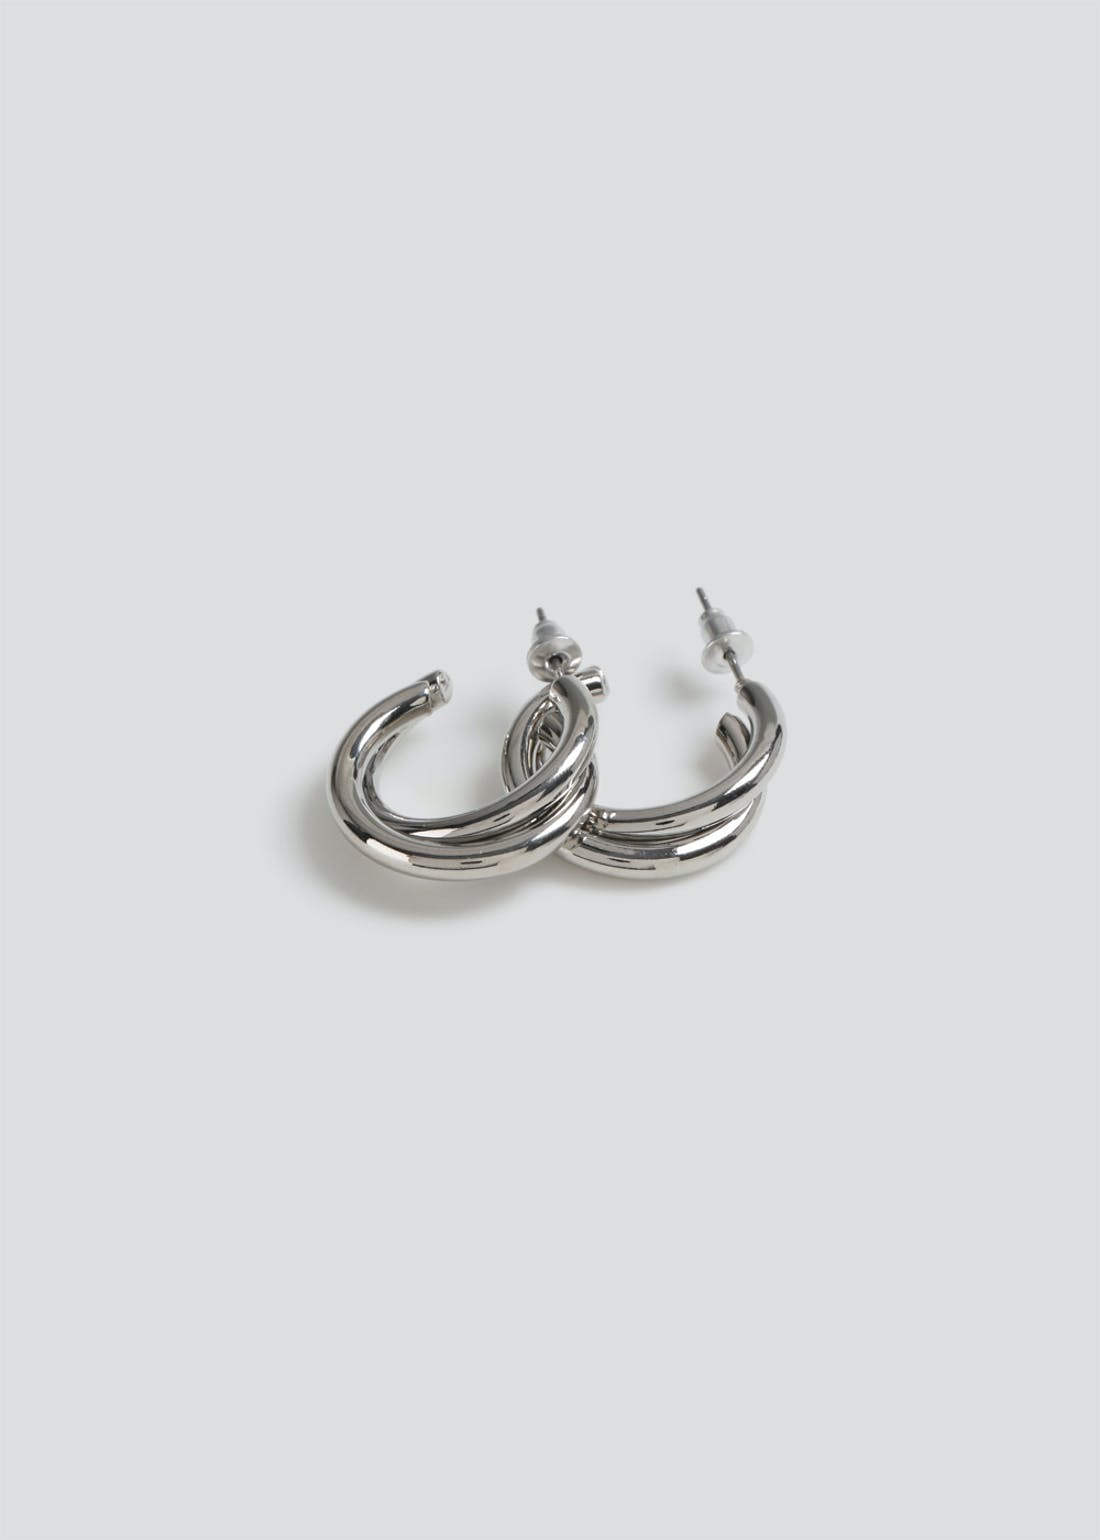 Double Twisted Hoop Earrings